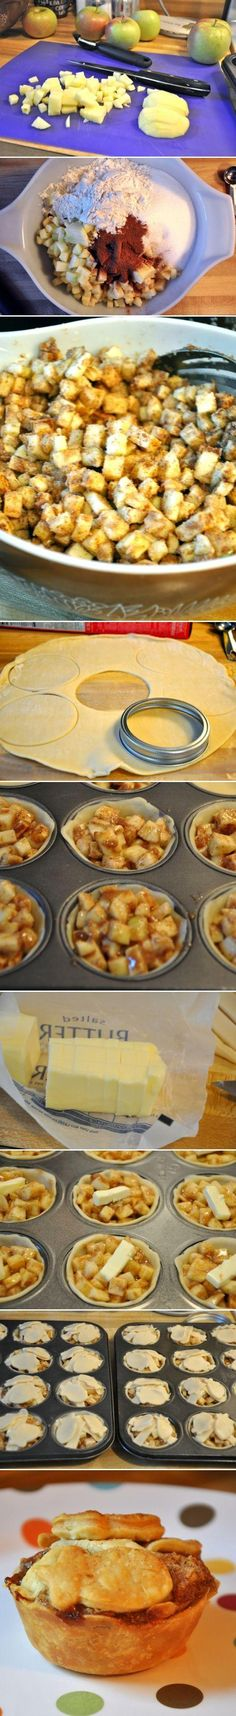 DIY Mini Apple Pie